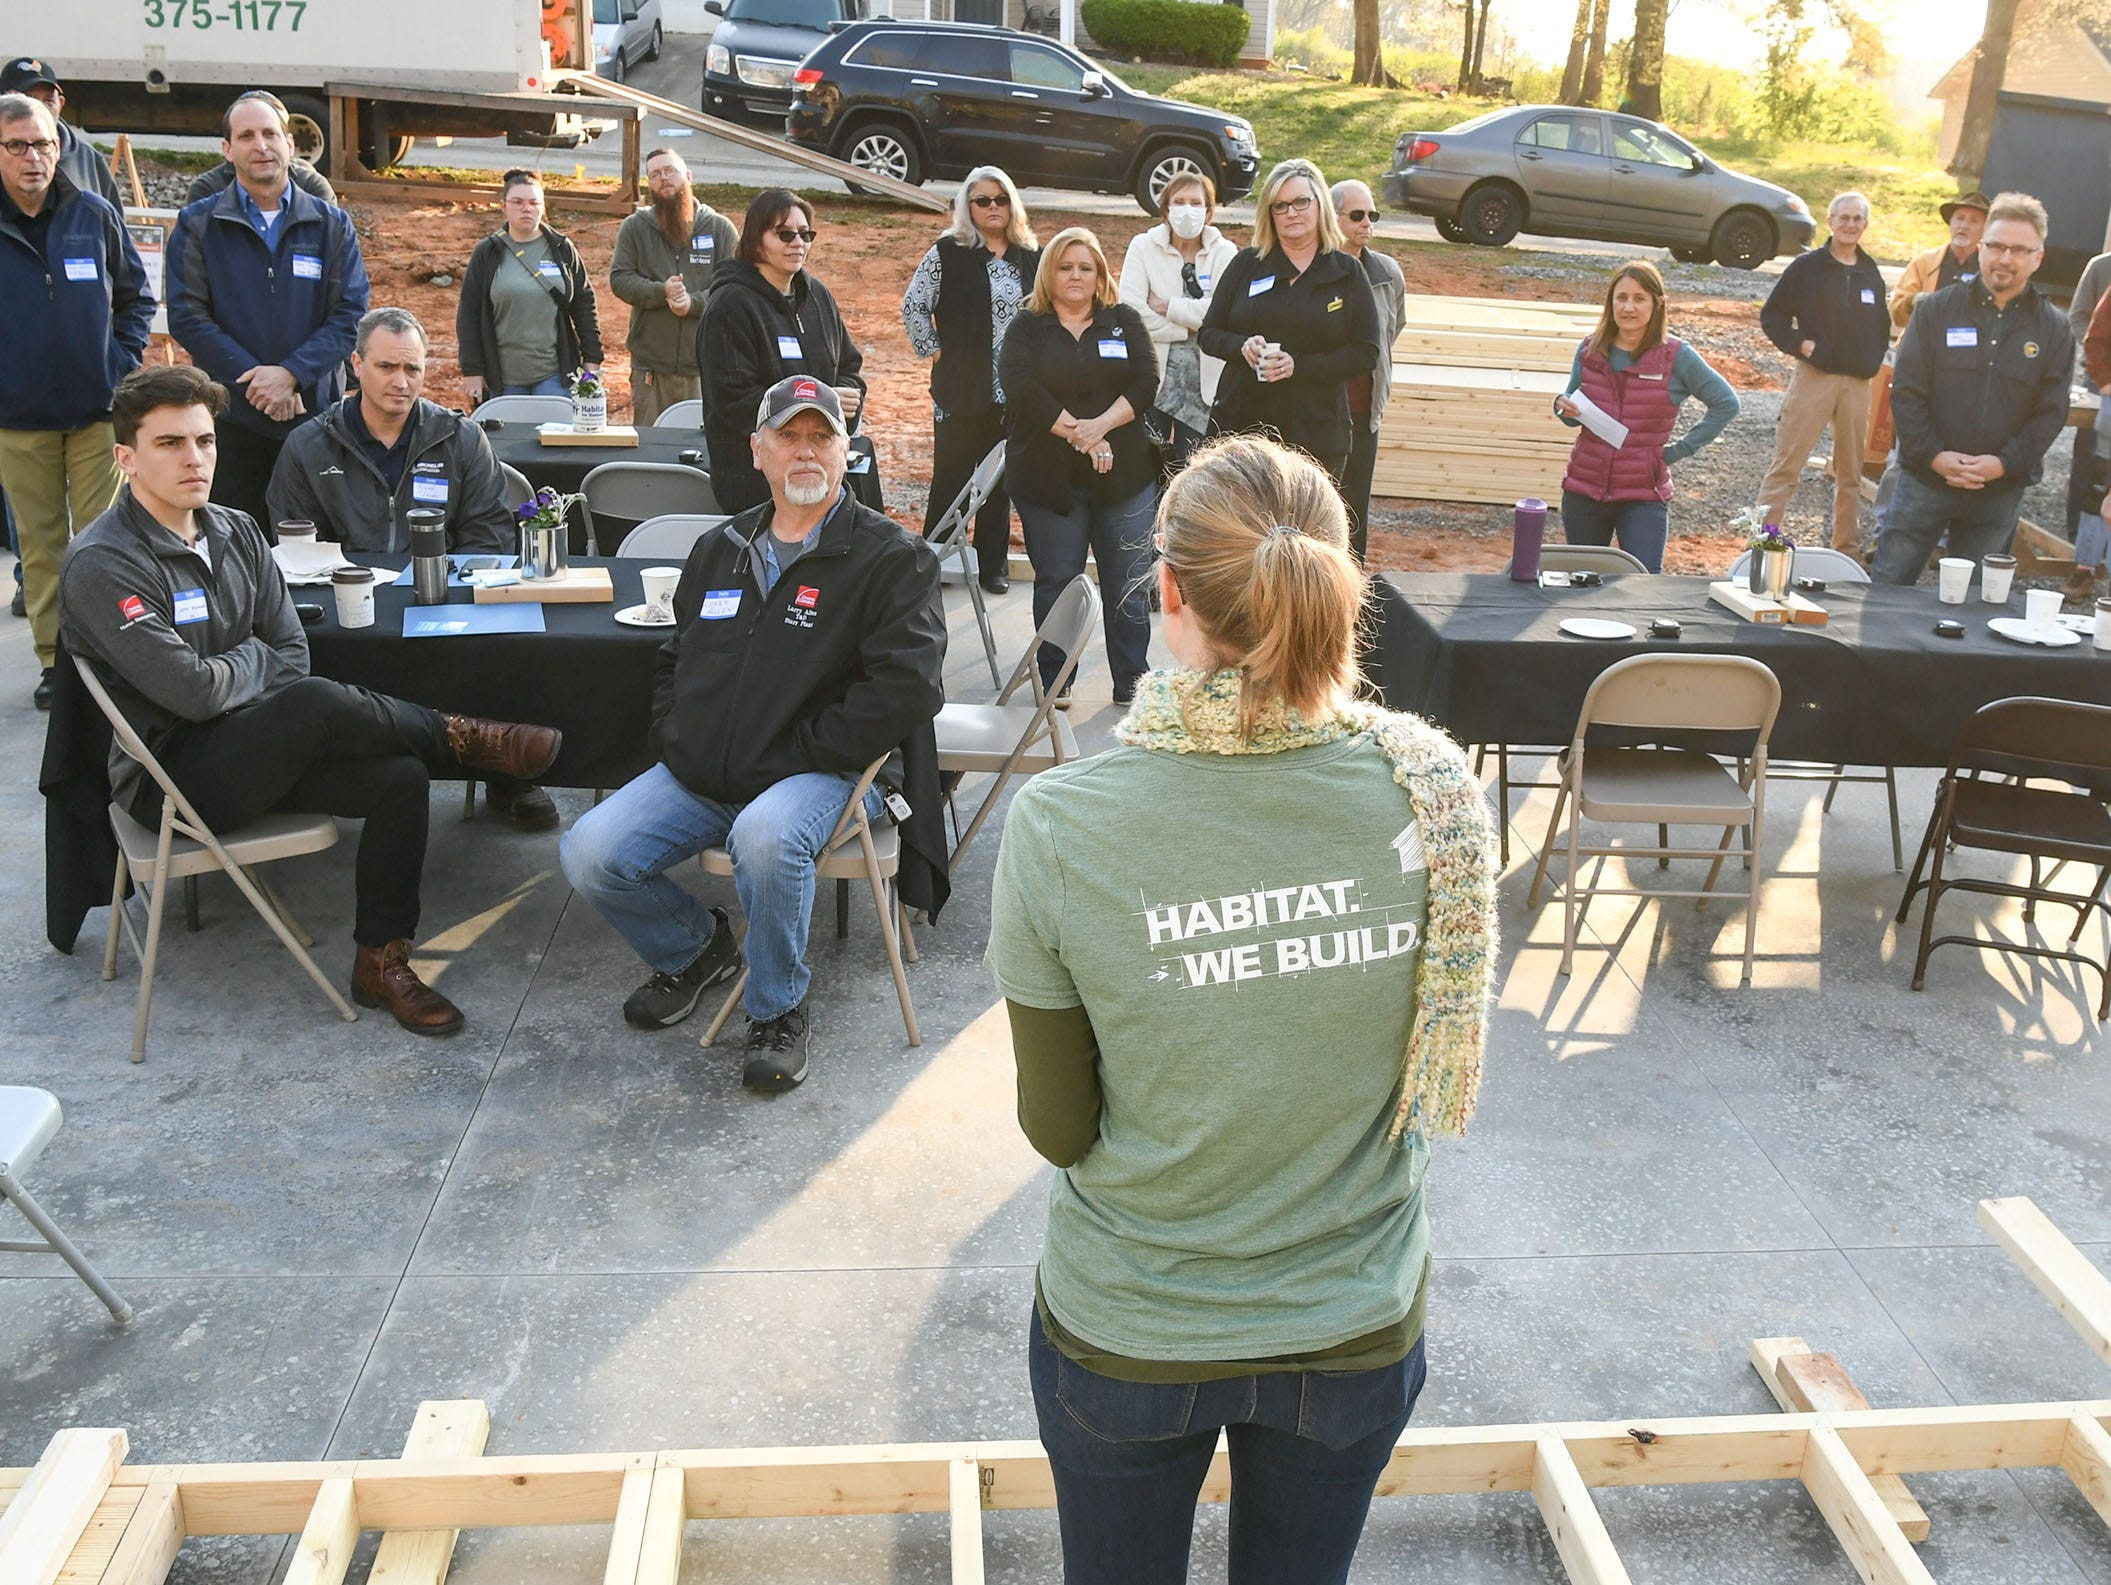 Kylie Herbert, development director for Habitat for Humanity of Anderson County welcomes volunteers ready for a wall-raising event for new homeowner recipient Victoria Santos in Anderson Thursday. The home is the eighth on Melrose Place in Anderson since Clemson football players, including Deshaun Watson, helped built the first in the fall of 2015.